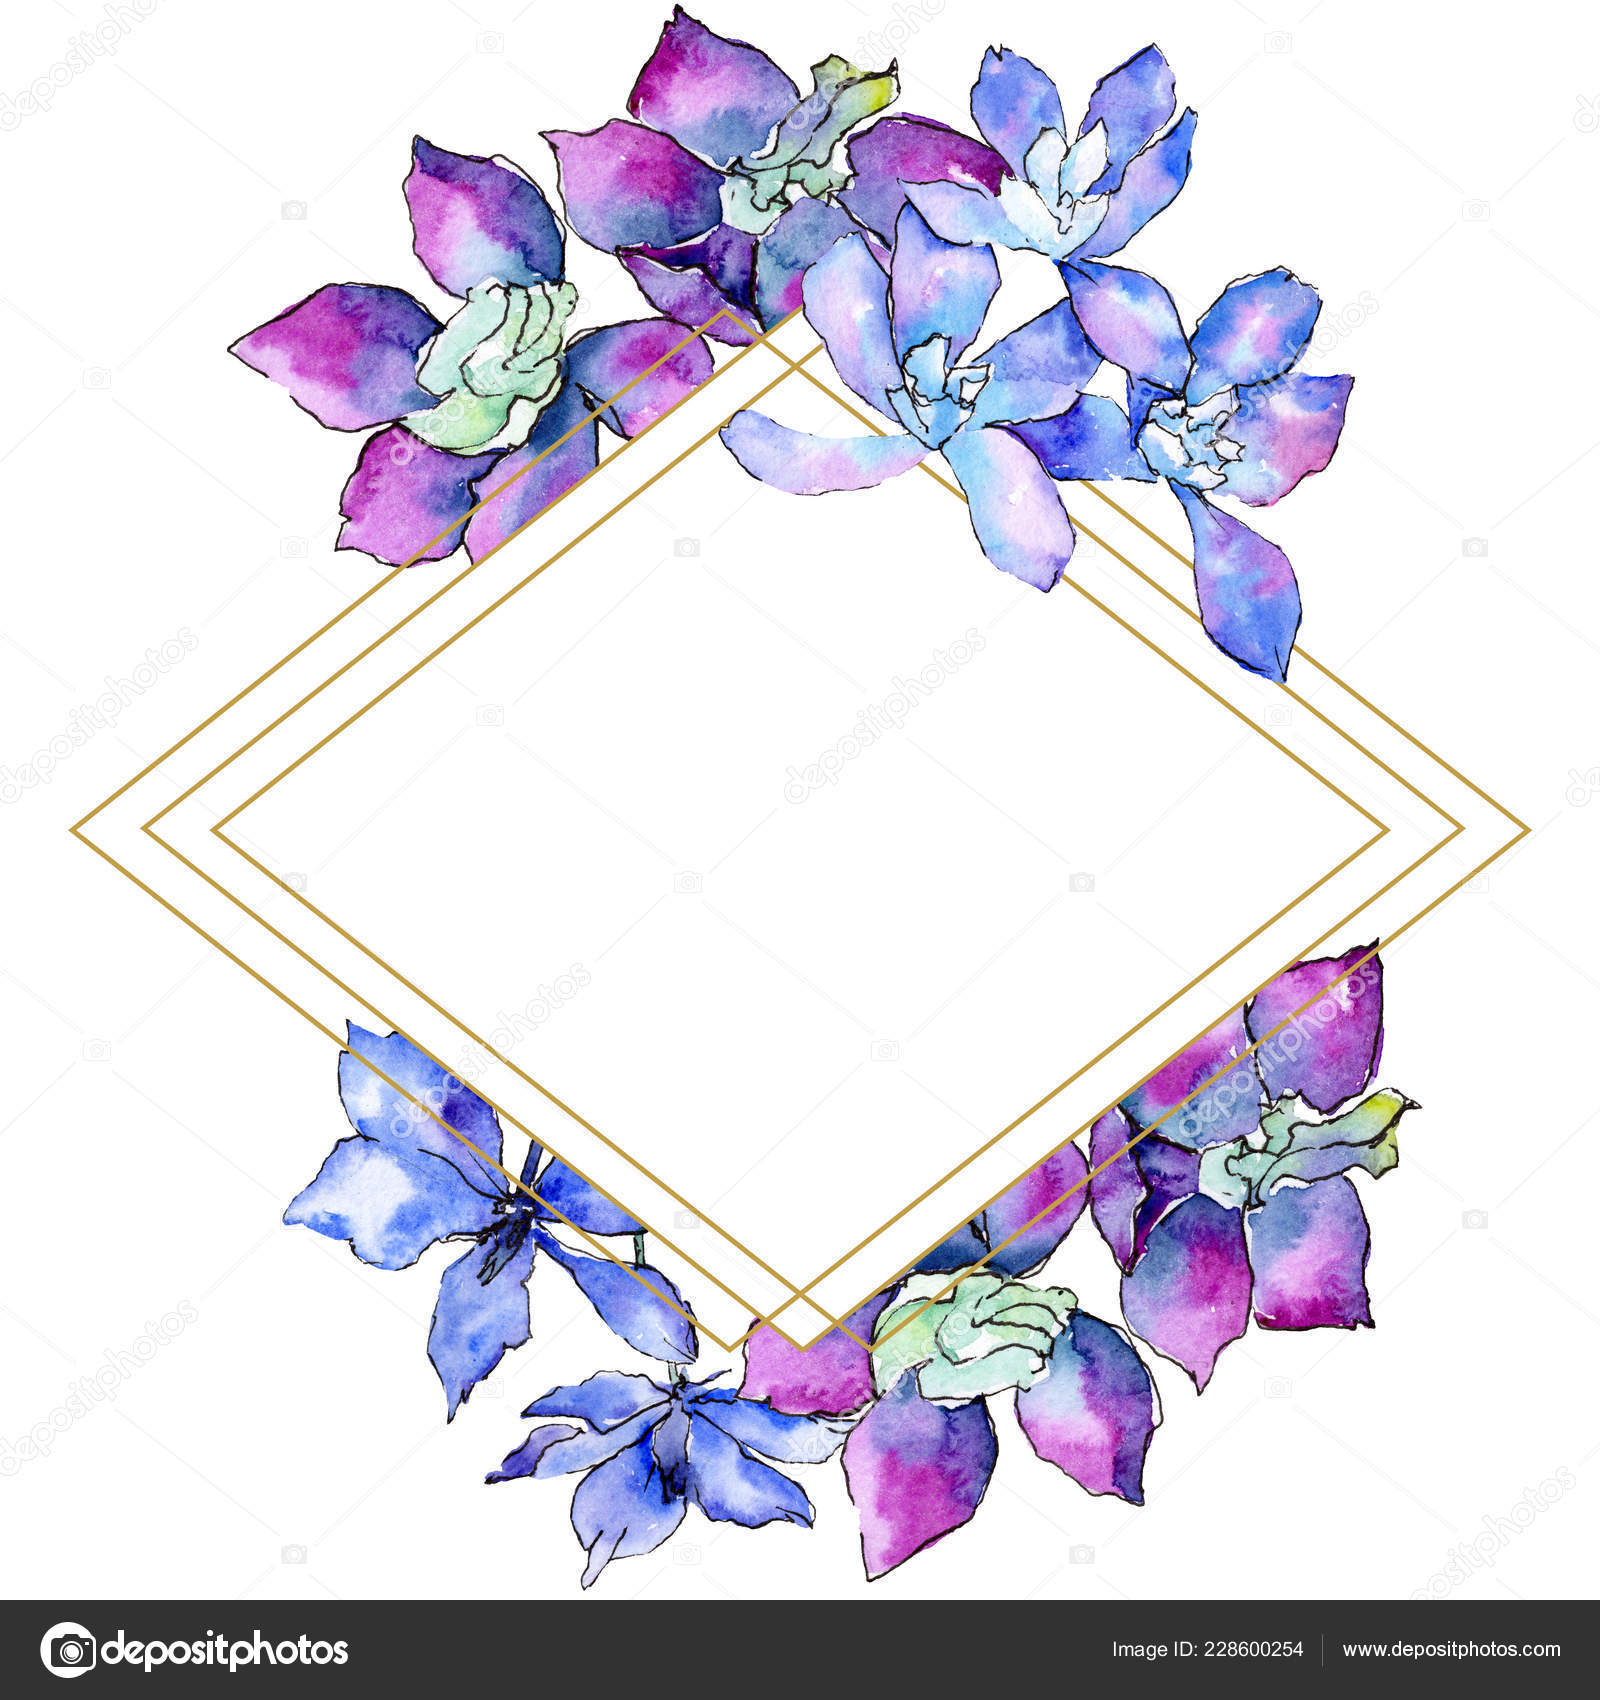 Purple Orchid Flowers Watercolor Background Illustration Frame